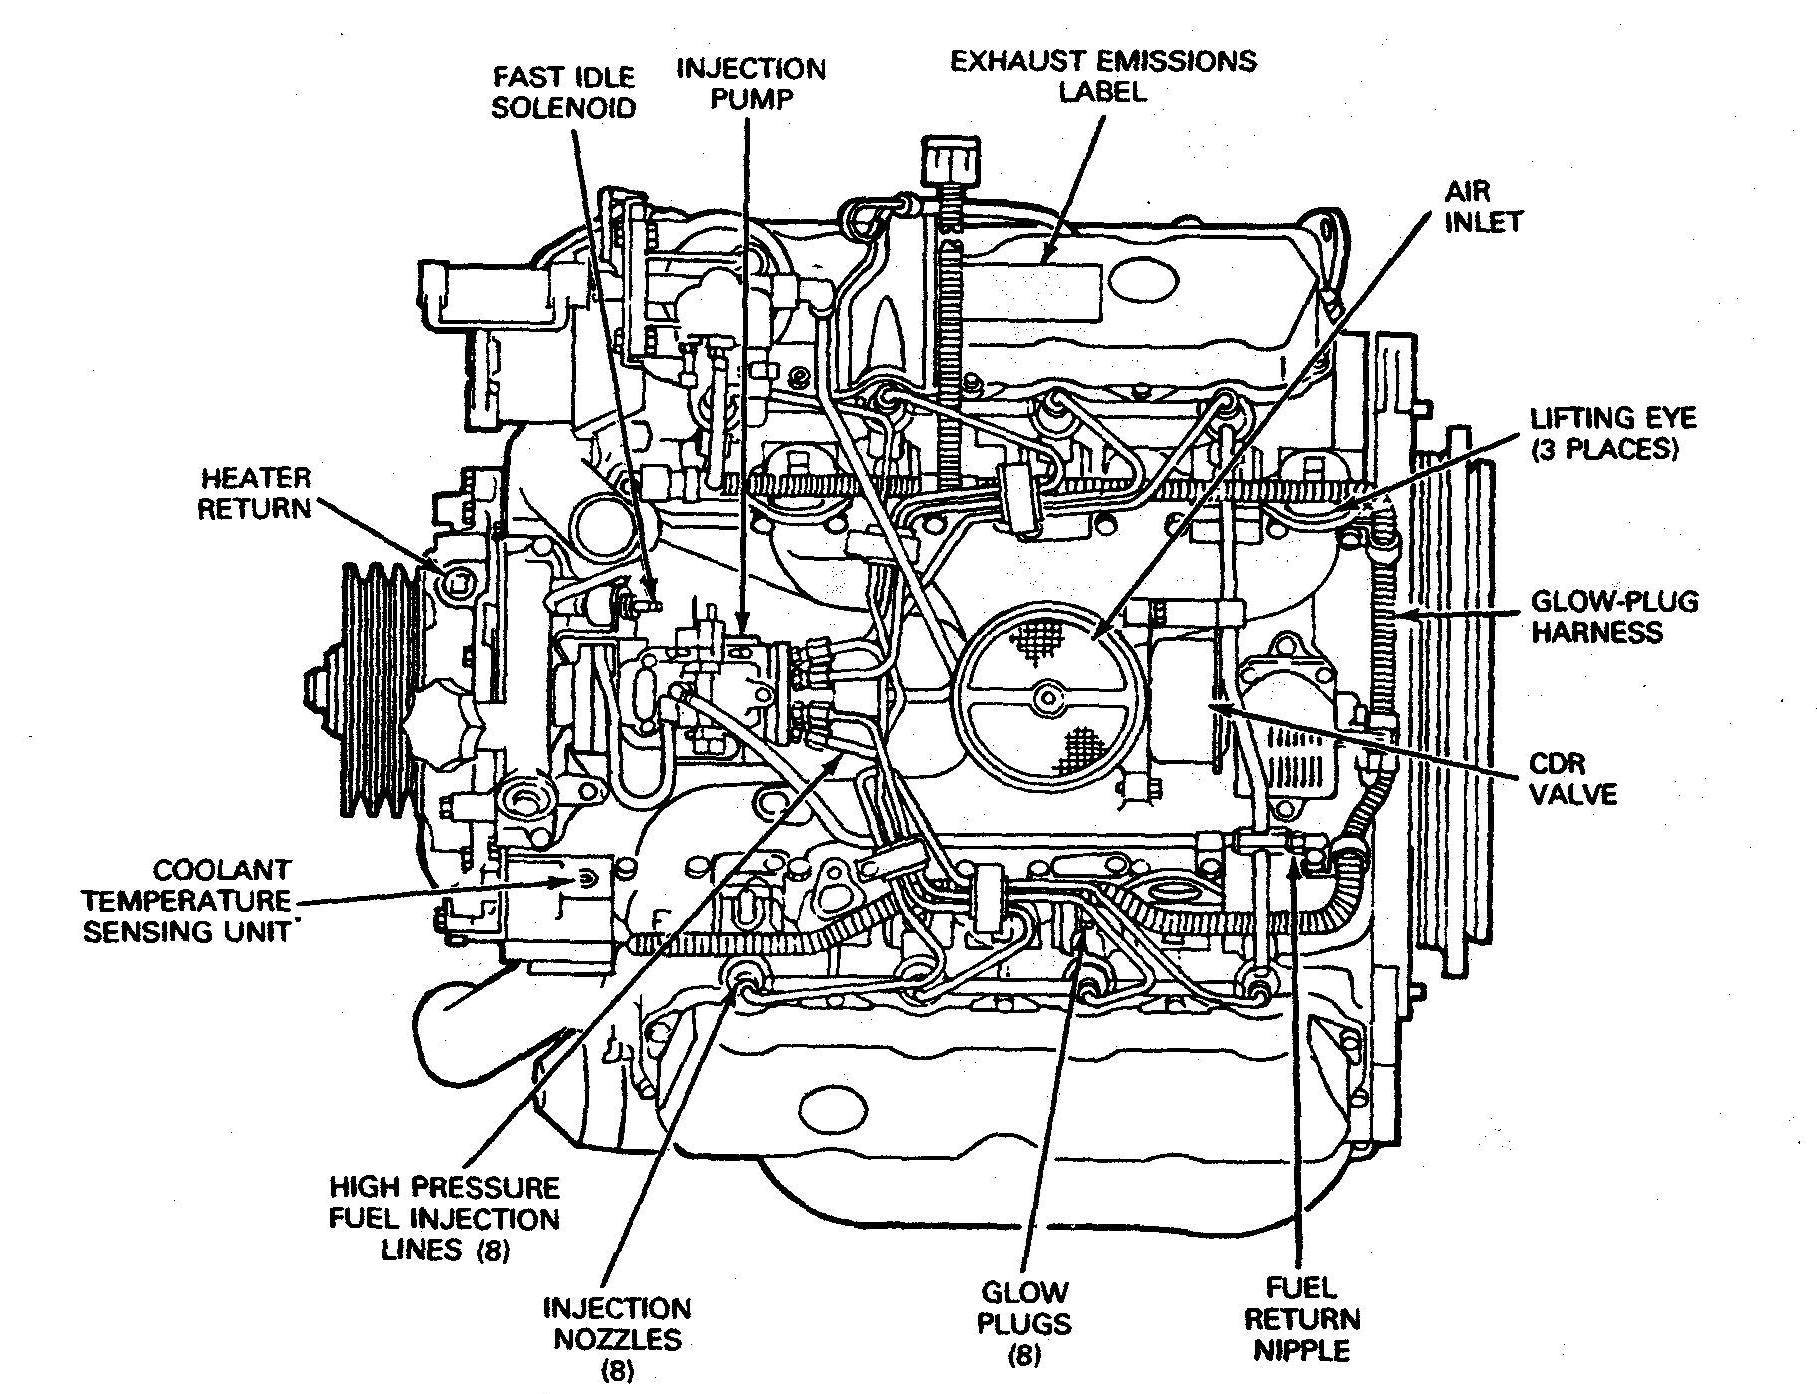 1996 ford 7 3 liter diesel engine diagram high pressure oil pump 7 3 liter diesel engine diagram engine and jet drive